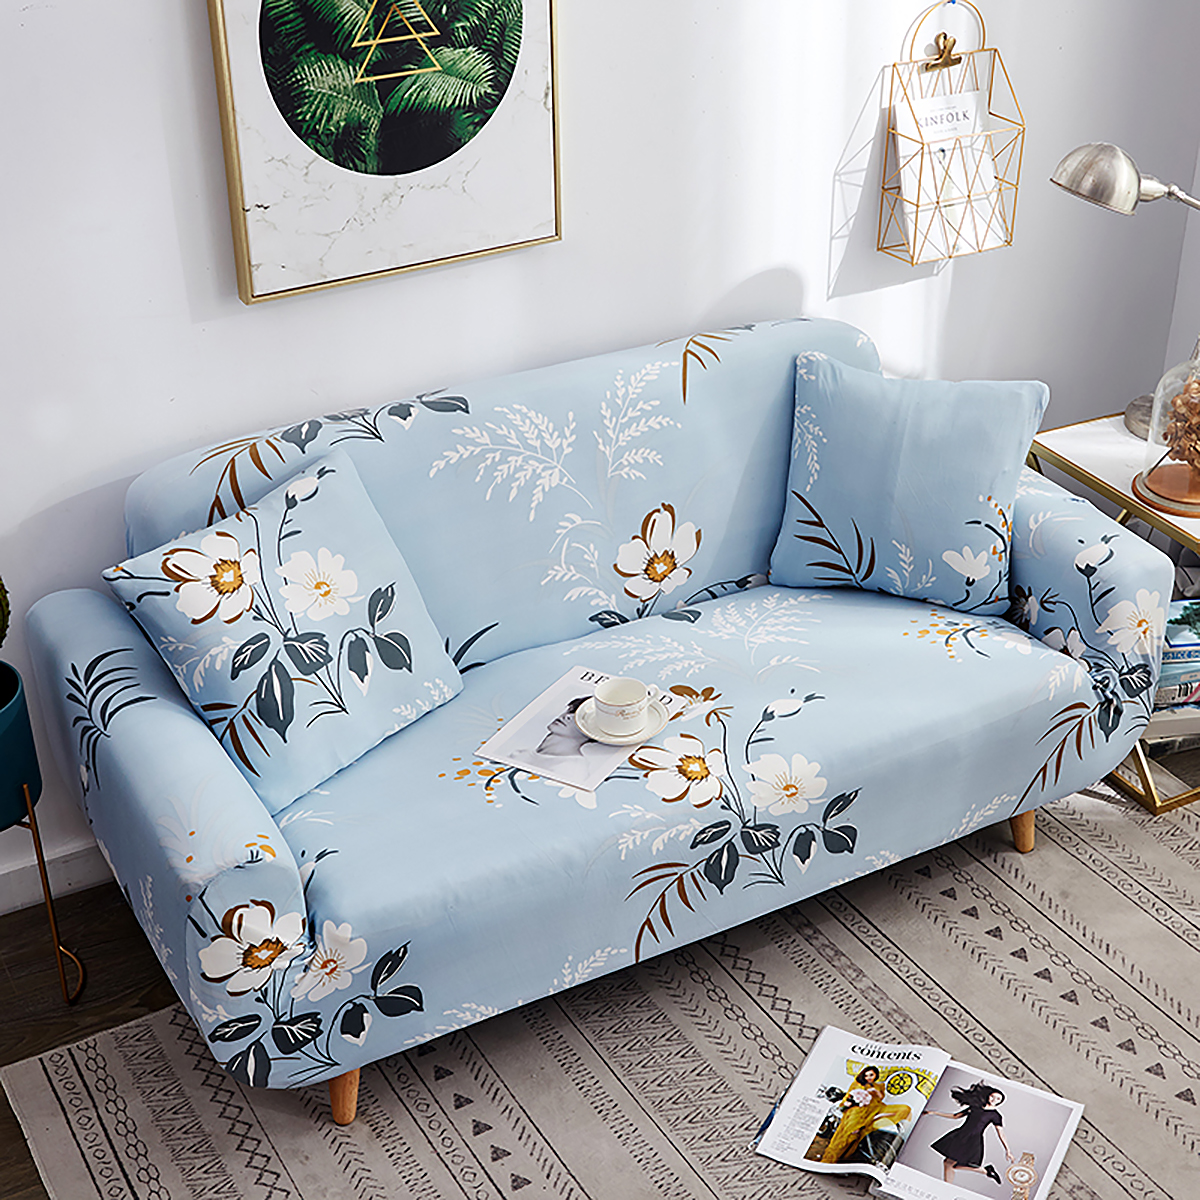 Sofa Covers 1//2//3//4 Seater Settee Stretch Lounge Slipcover Chair Protector Couch